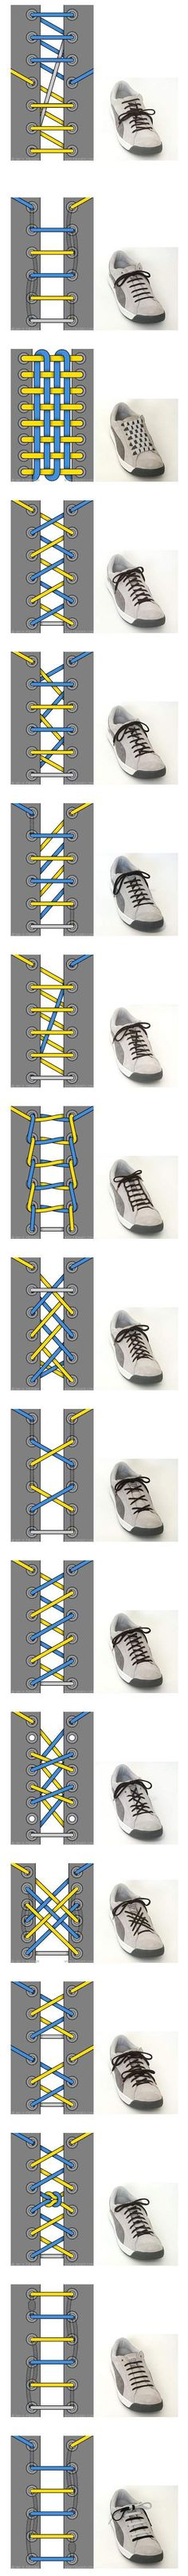 Different Ways Of Tying Your Shoes. Neat